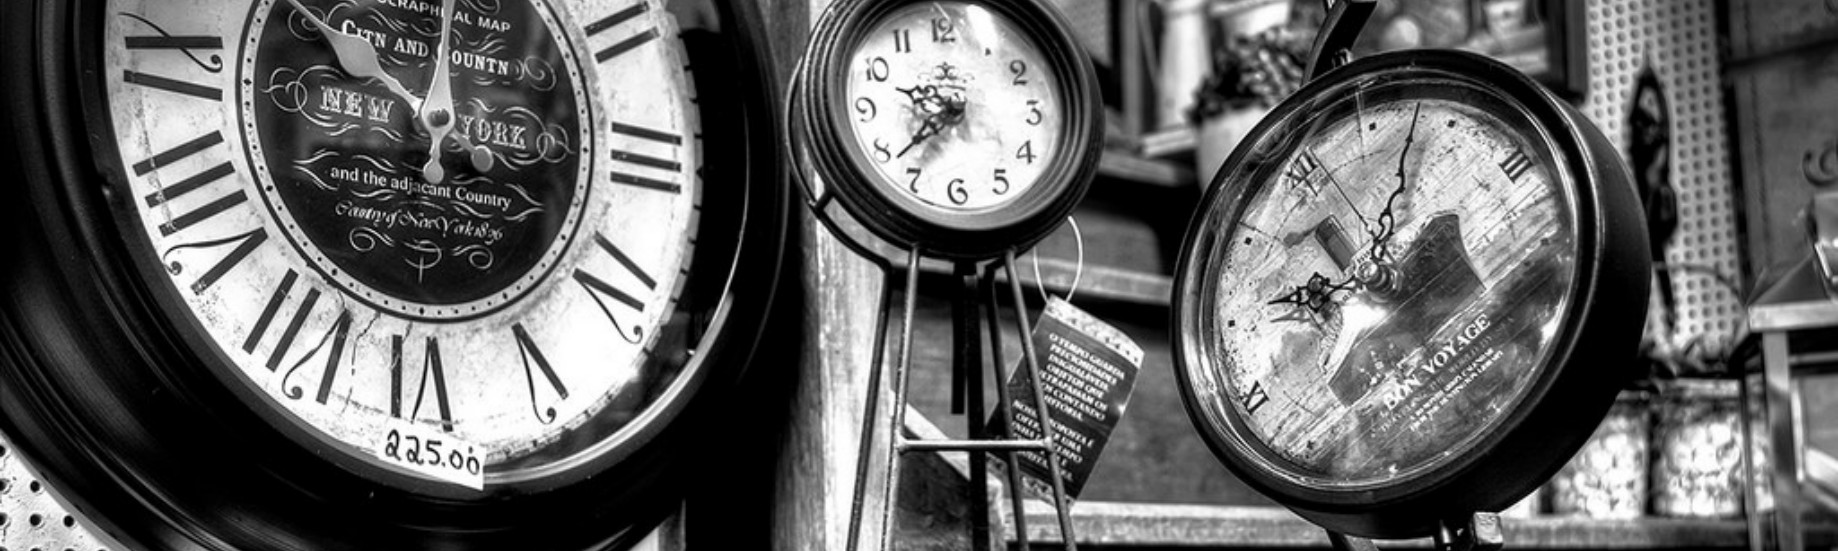 The Illusion of Time - The Startup - Medium